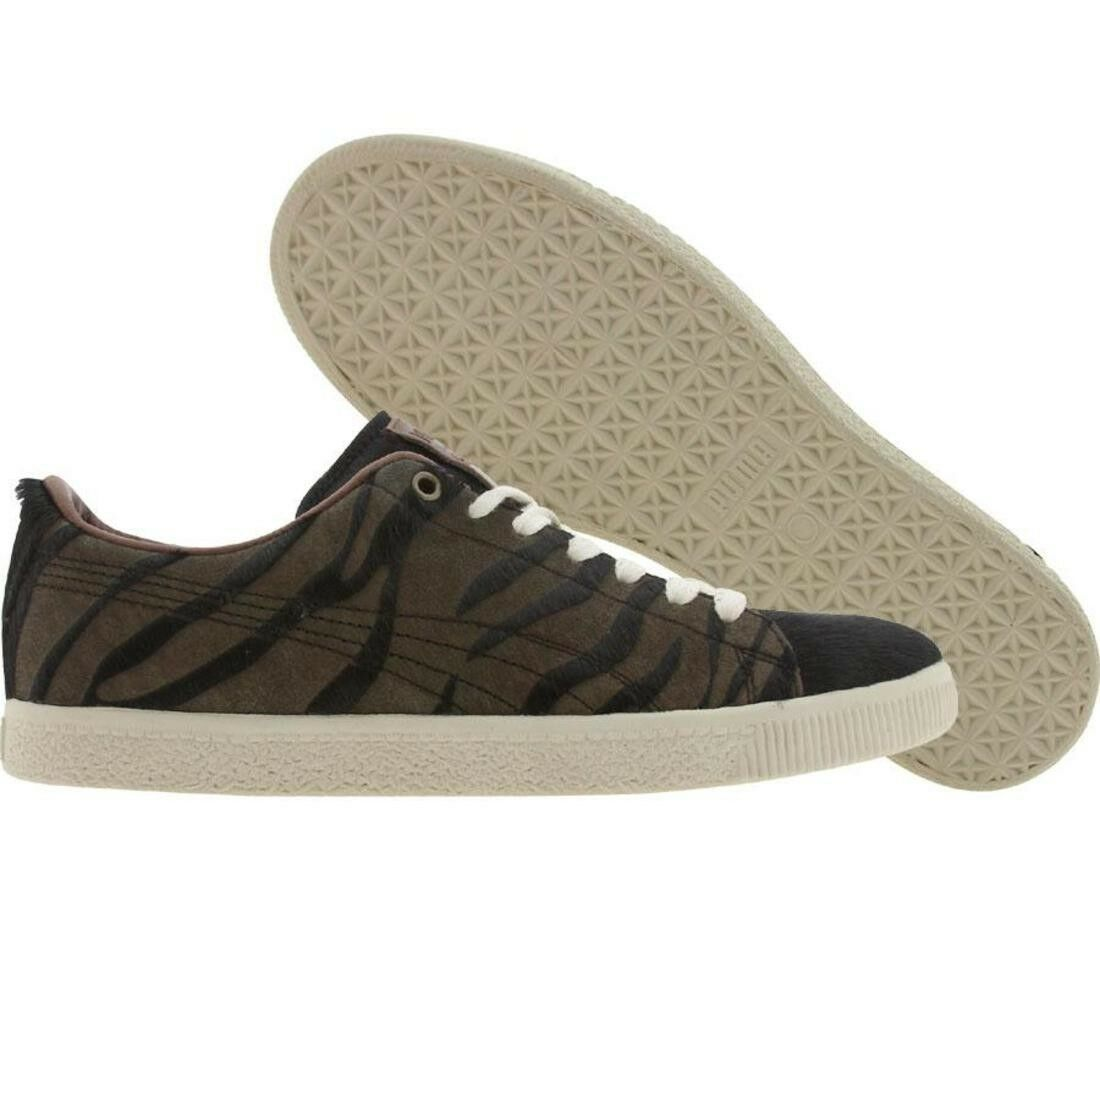 89.99 Puma Clyde Jungle List (schwarz   chocolate braun) 345826-02